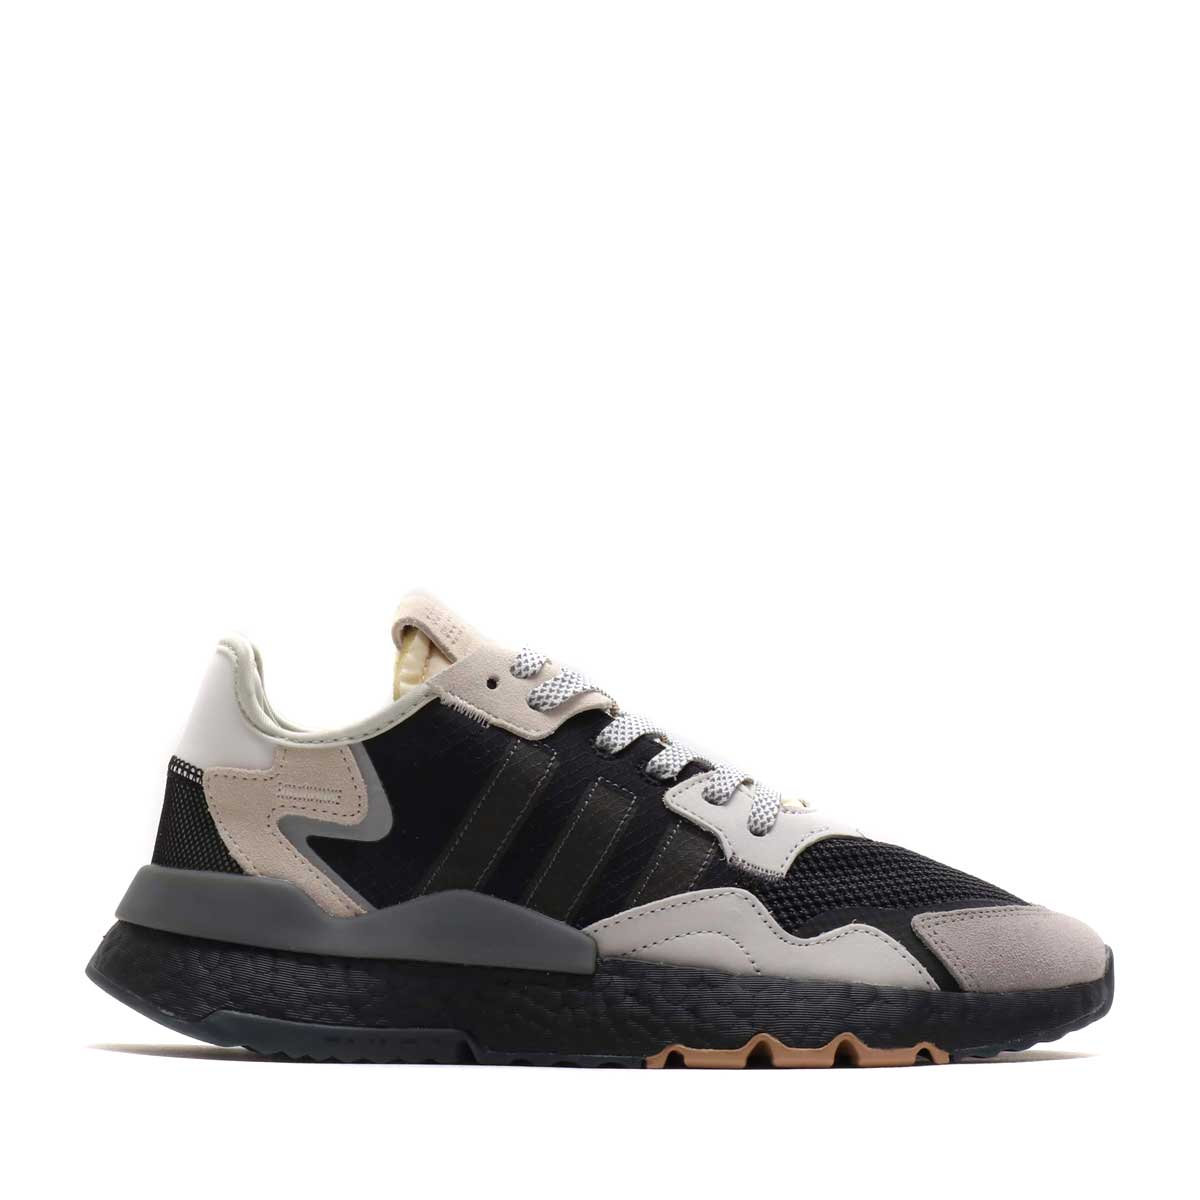 adidas Originals NITE JOGGER(CORE BLACK/CARBON/RUNNING WHITE)(アディダス ナイト ジョガー)【メンズ】【スニーカー】【19SS-S】